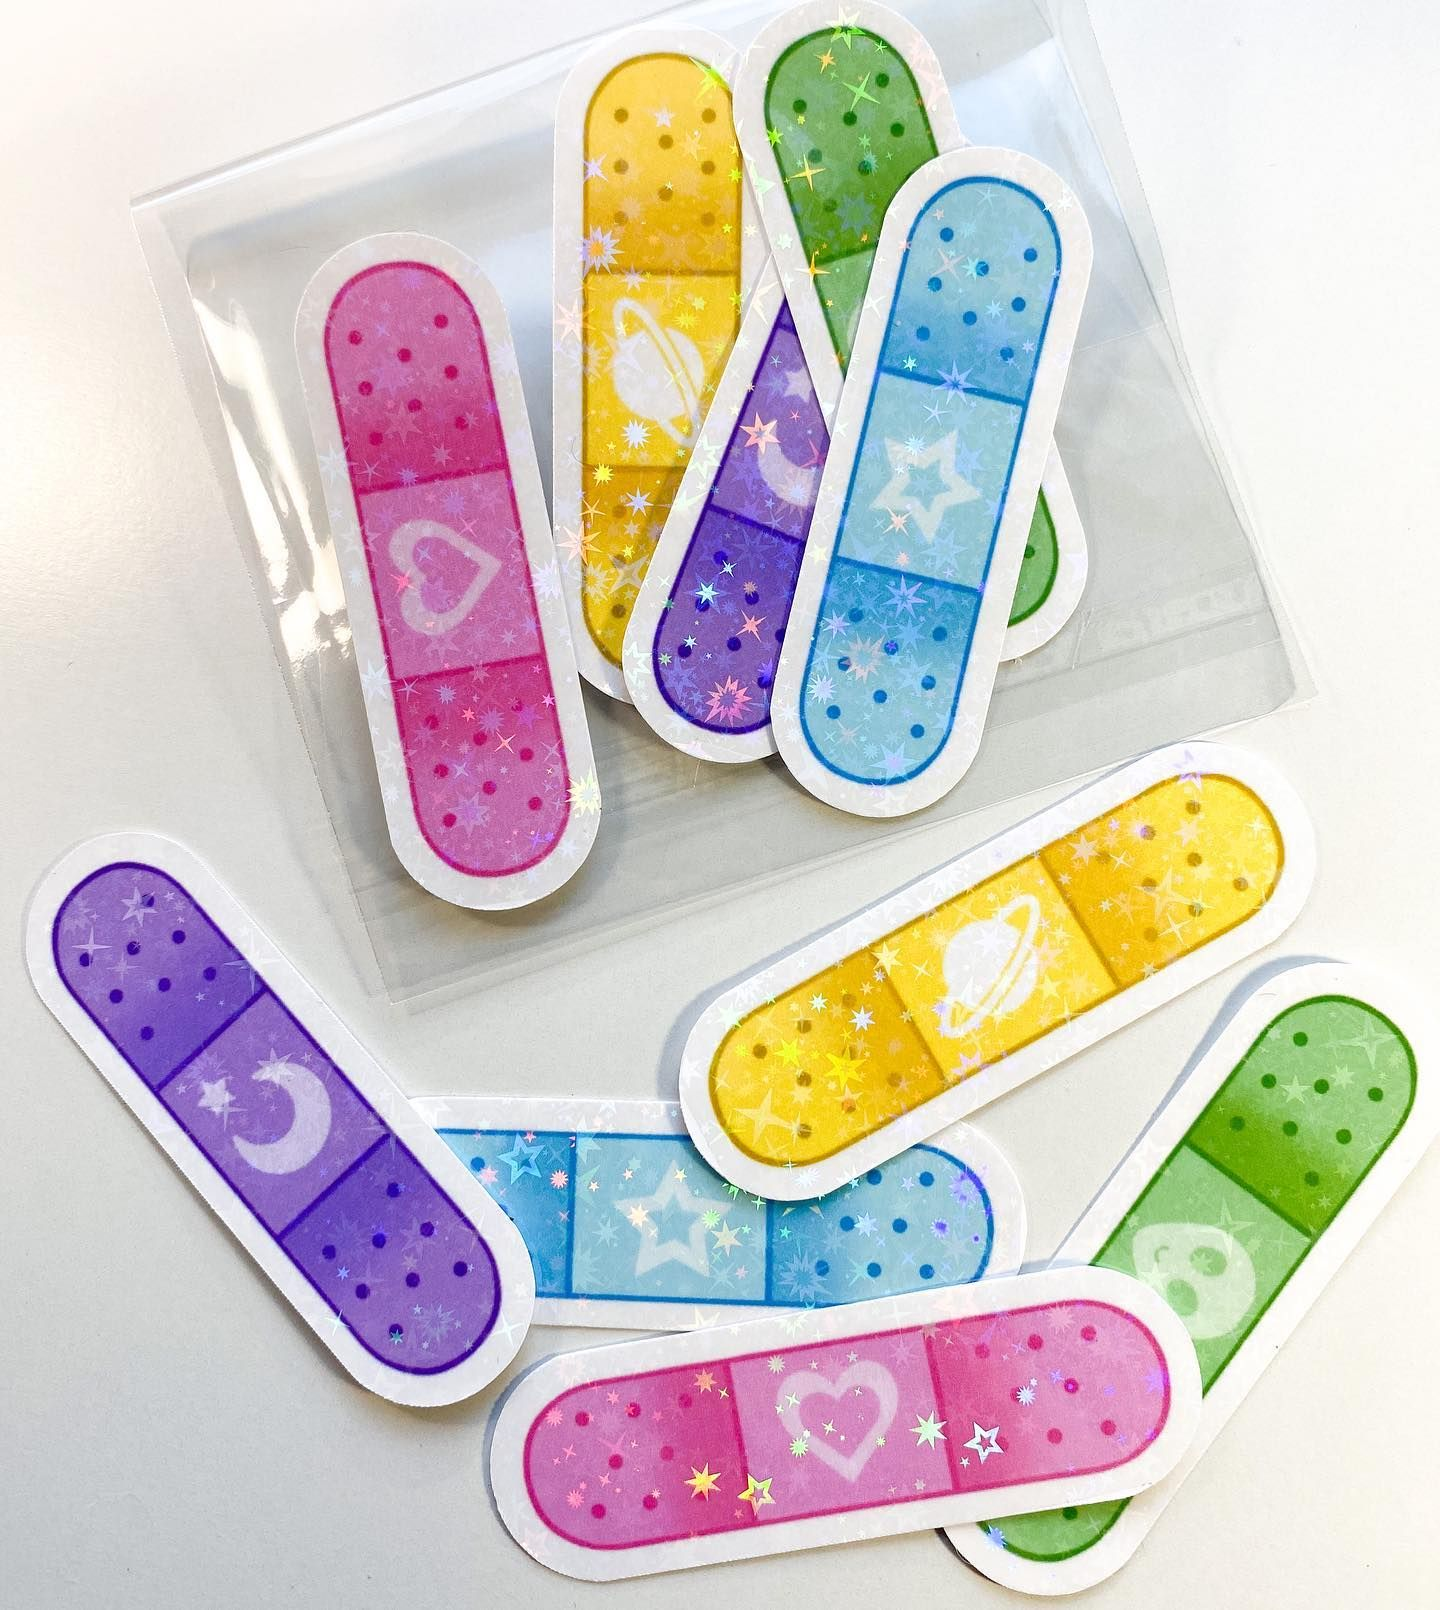 Holographic Band Aid Stickers Available Now Holographicstickers Holographic Bandaid Cute C Bandaid Sticker Print Stickers Cute Stickers [ 1610 x 1440 Pixel ]